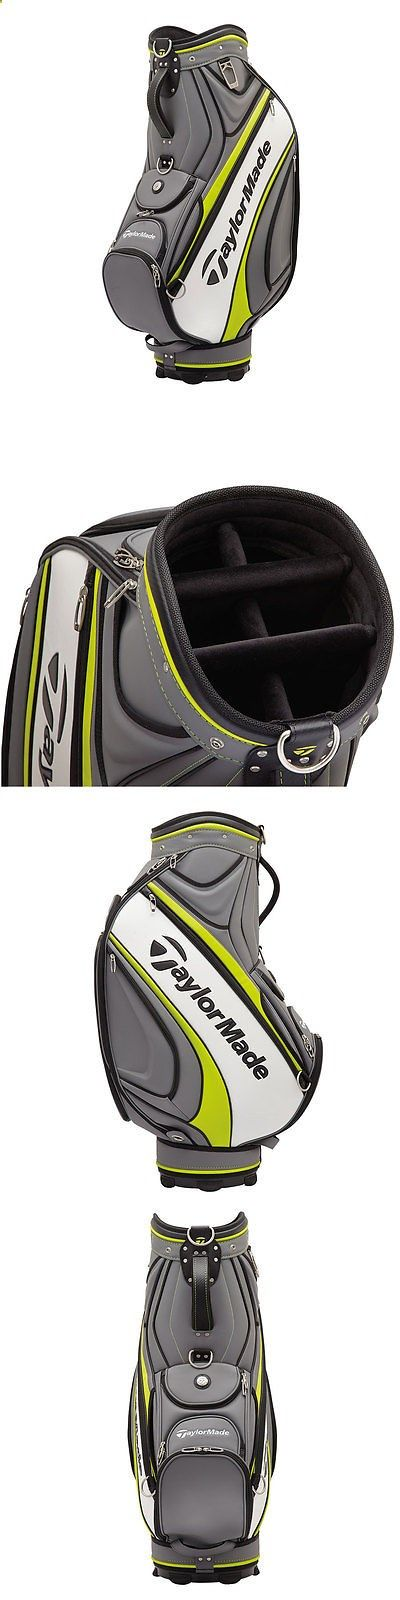 Golf Bags - Golf Club Bags 30109: Taylormade Tour Cart Golf Bag Mens New 2017 - White/Grey -> BUY IT NOW ONLY: $314.99 on eBay!